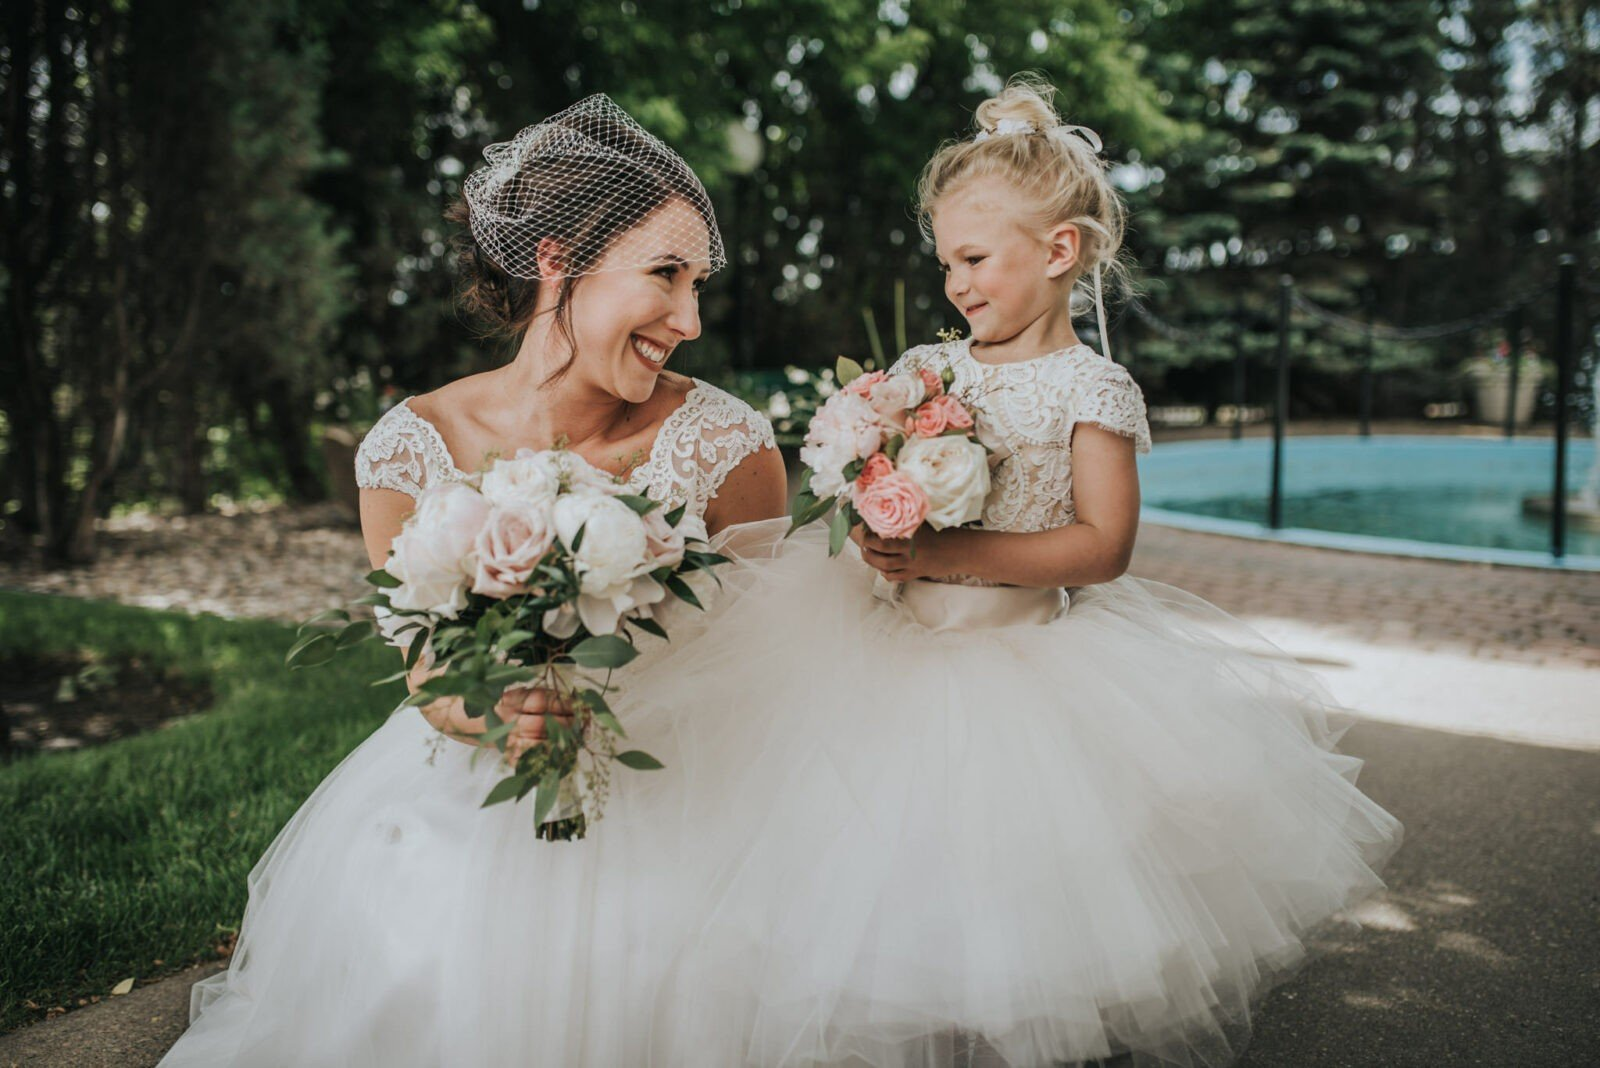 cutest flower girl and bride